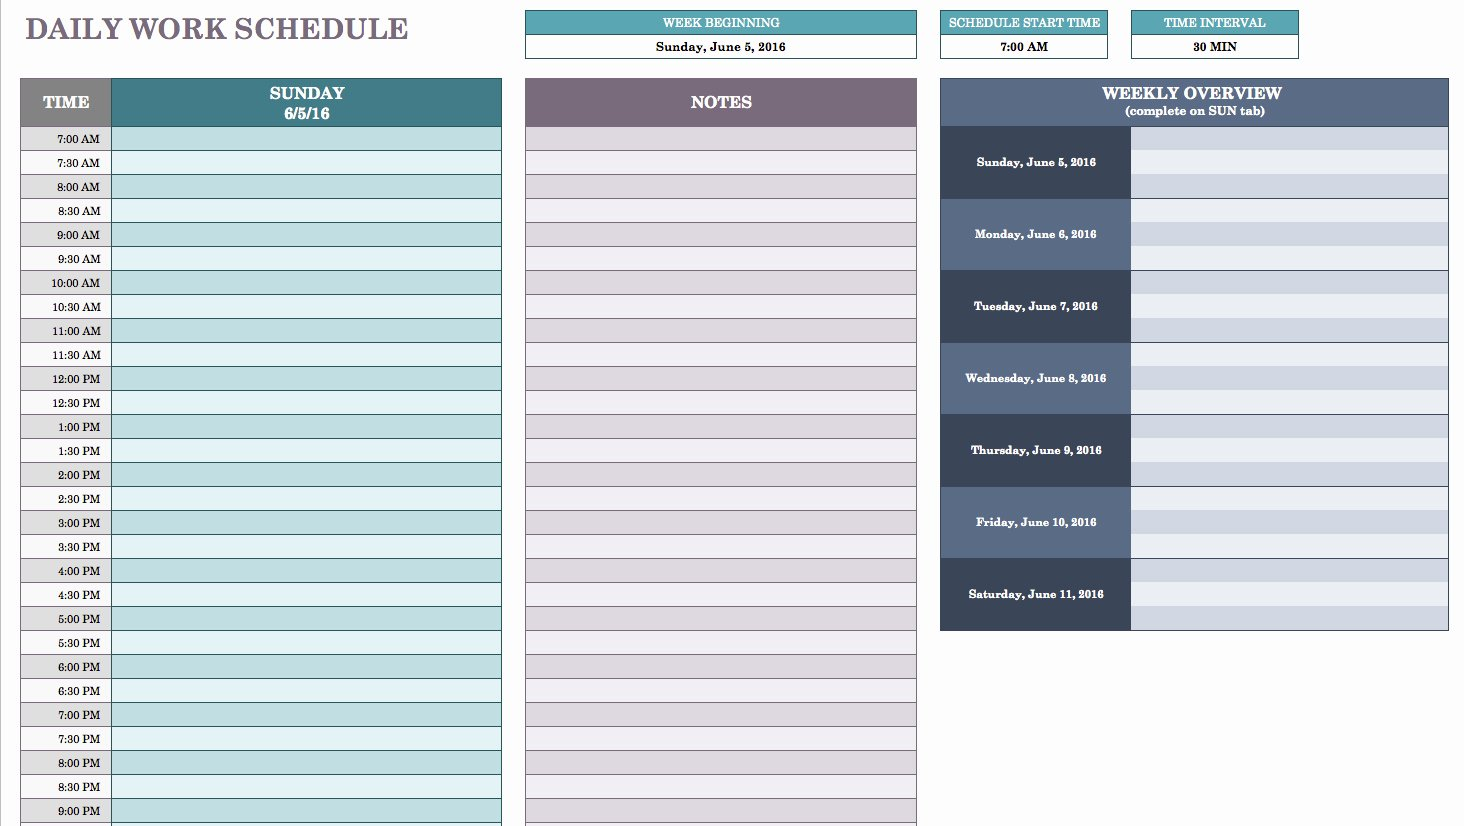 Daily Routine Schedule Template Lovely Free Daily Schedule Templates for Excel Smartsheet